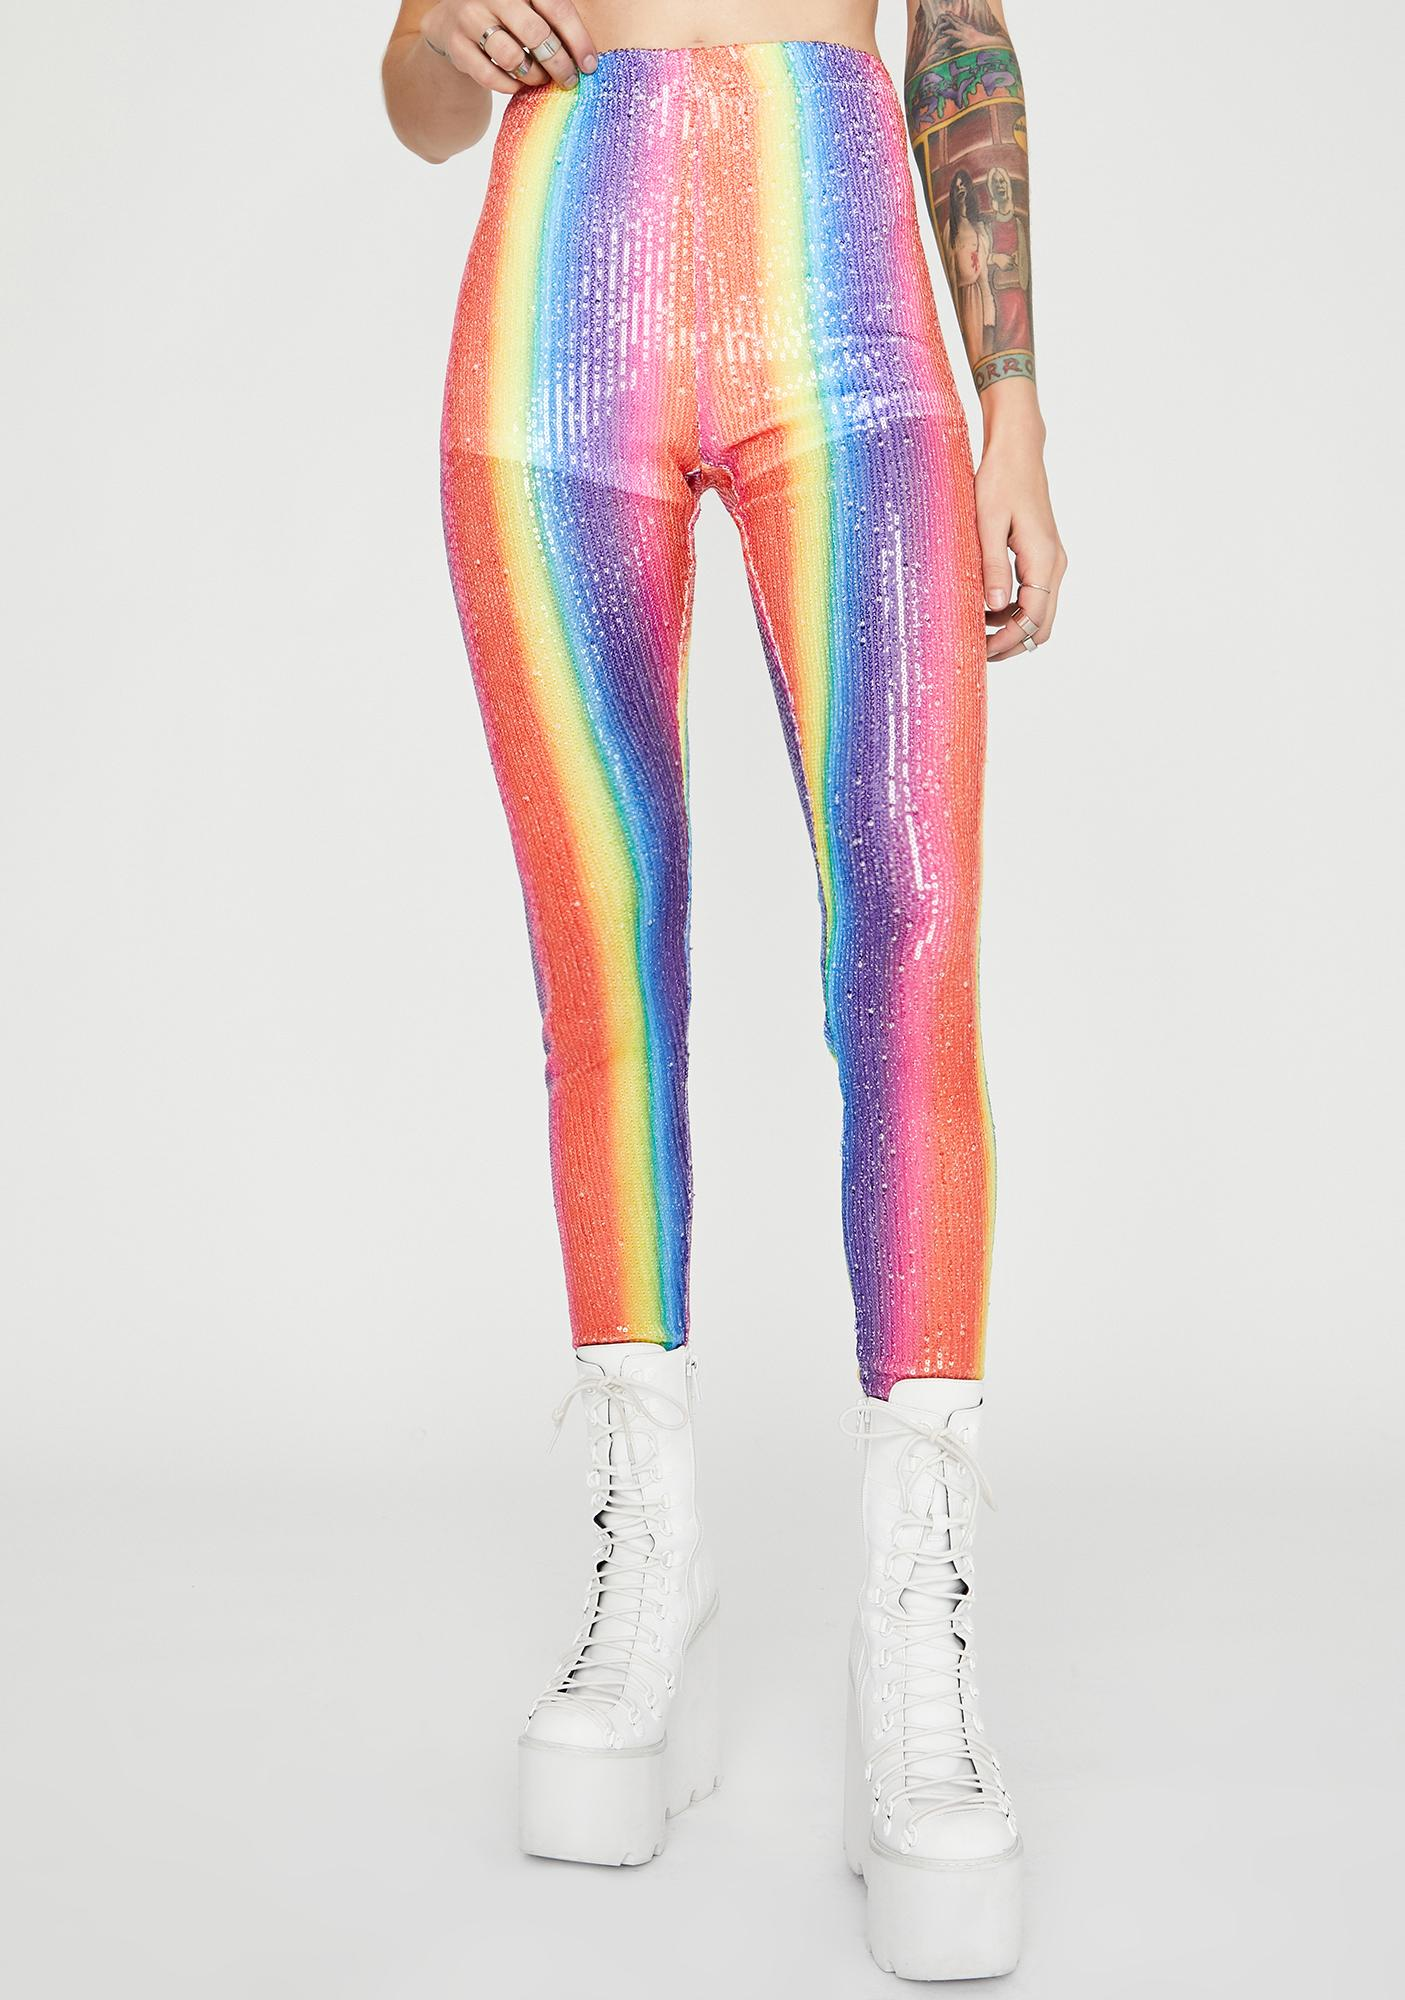 Candy Magic Sequin Leggings